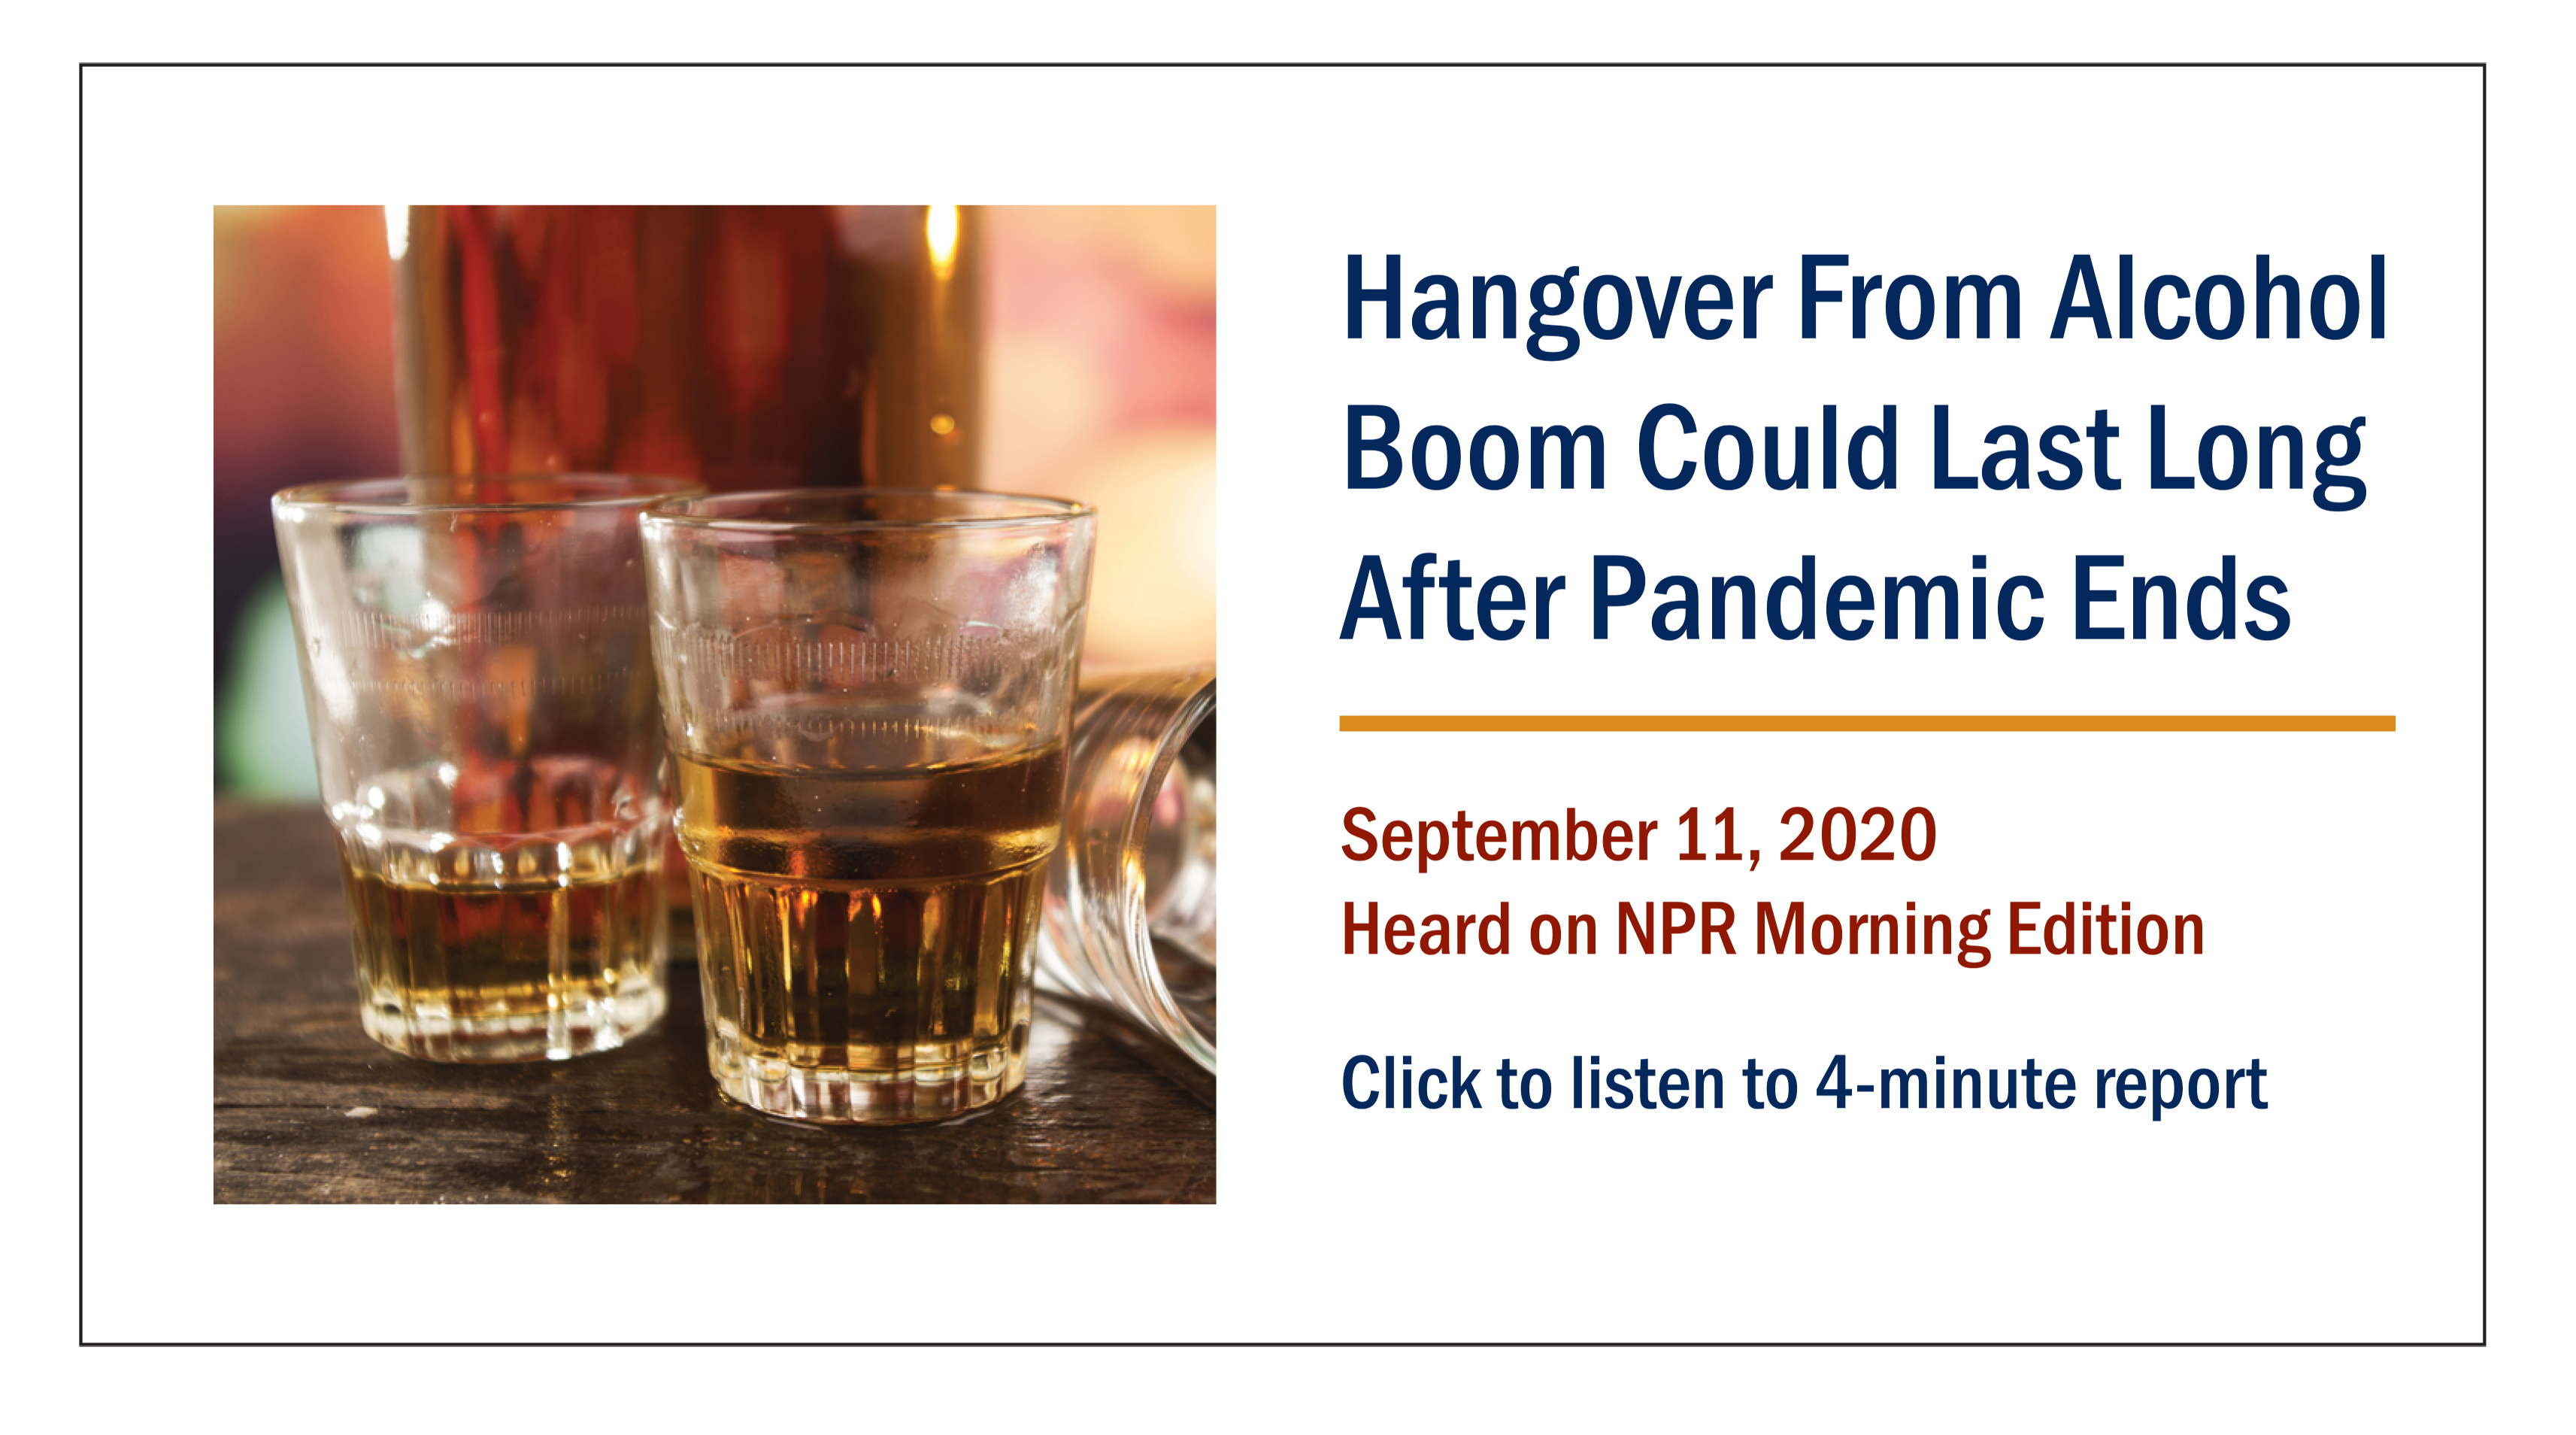 Hangover from alcohol could last long after the pandemic ends.